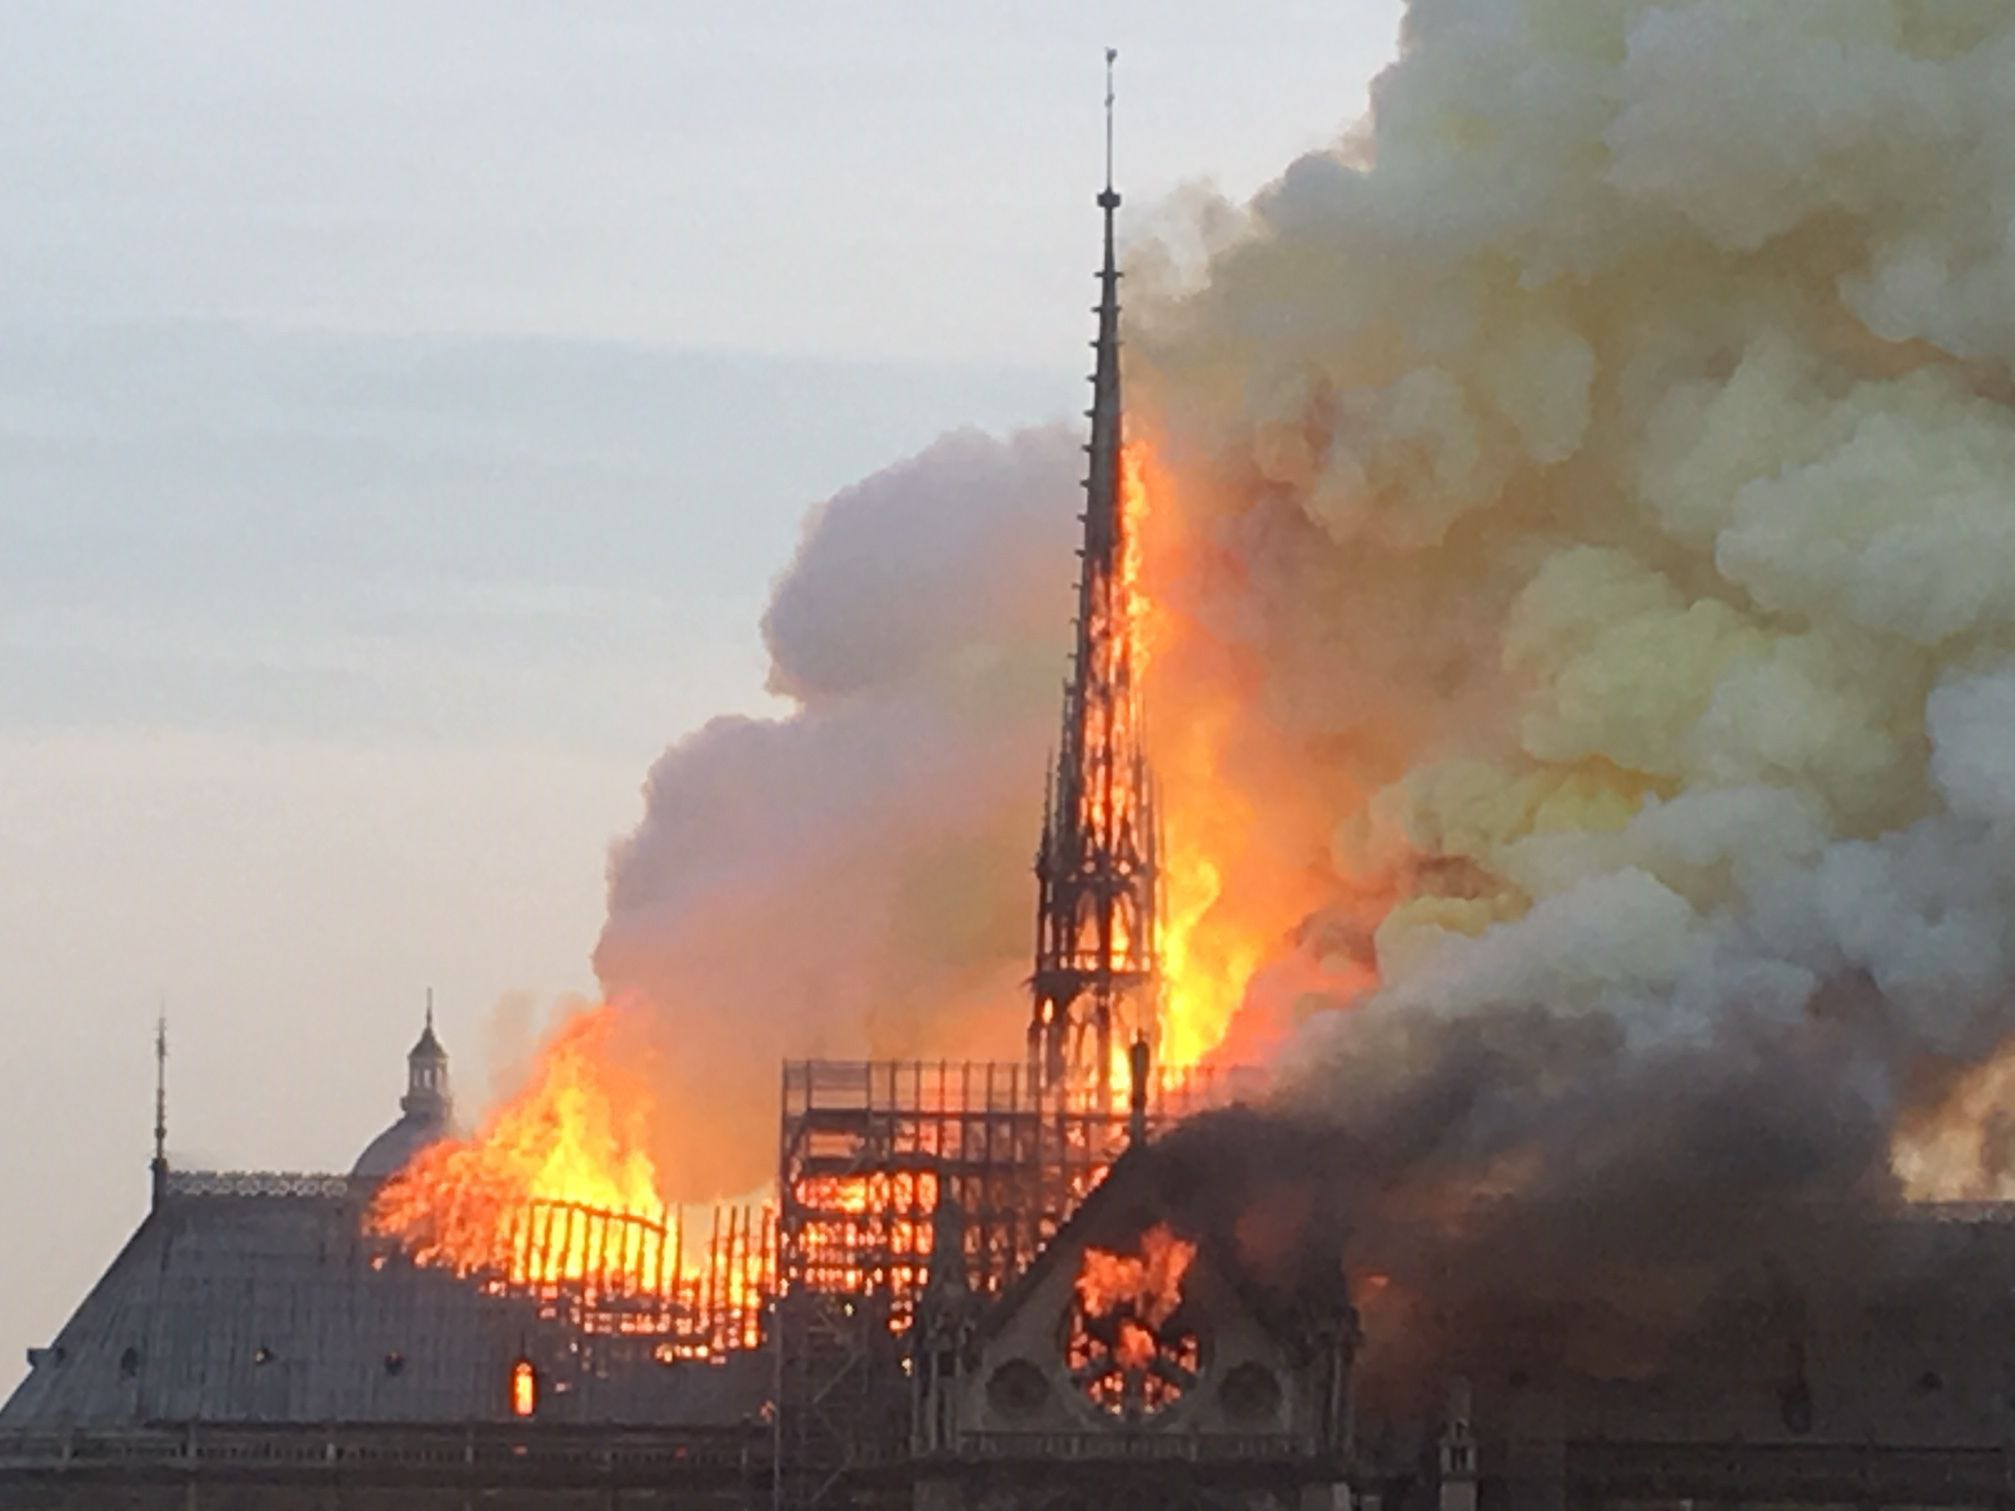 A fire erupted on the roof of Notre Dame Cathedral April 15, 2019.